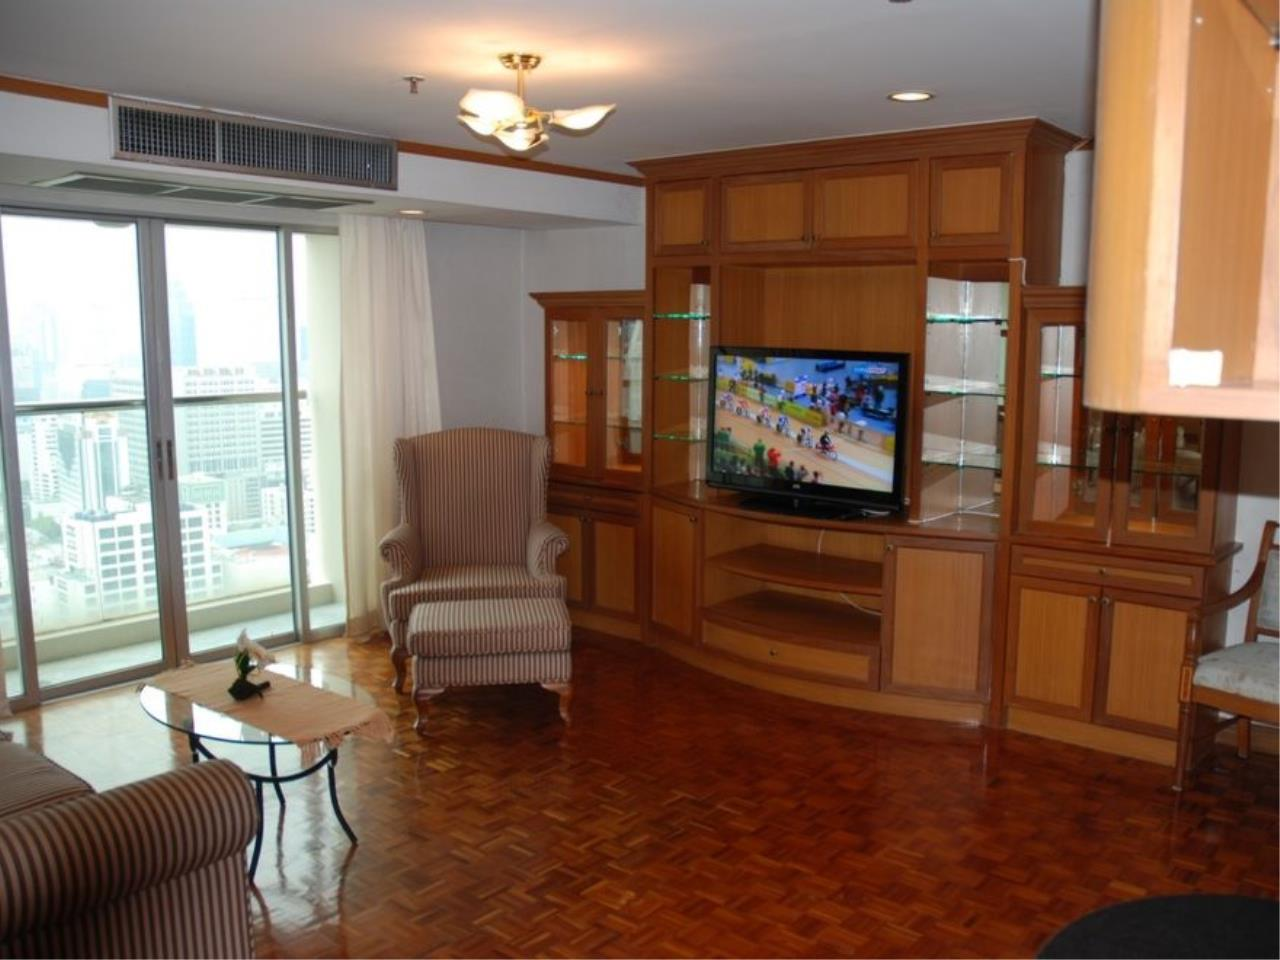 Siam Prop Agency's Shukhumvit Suits Condo for Rent / 1 Bed 1 Bath Shukhumvit Soi 13 / Good deal 19,900/month 1